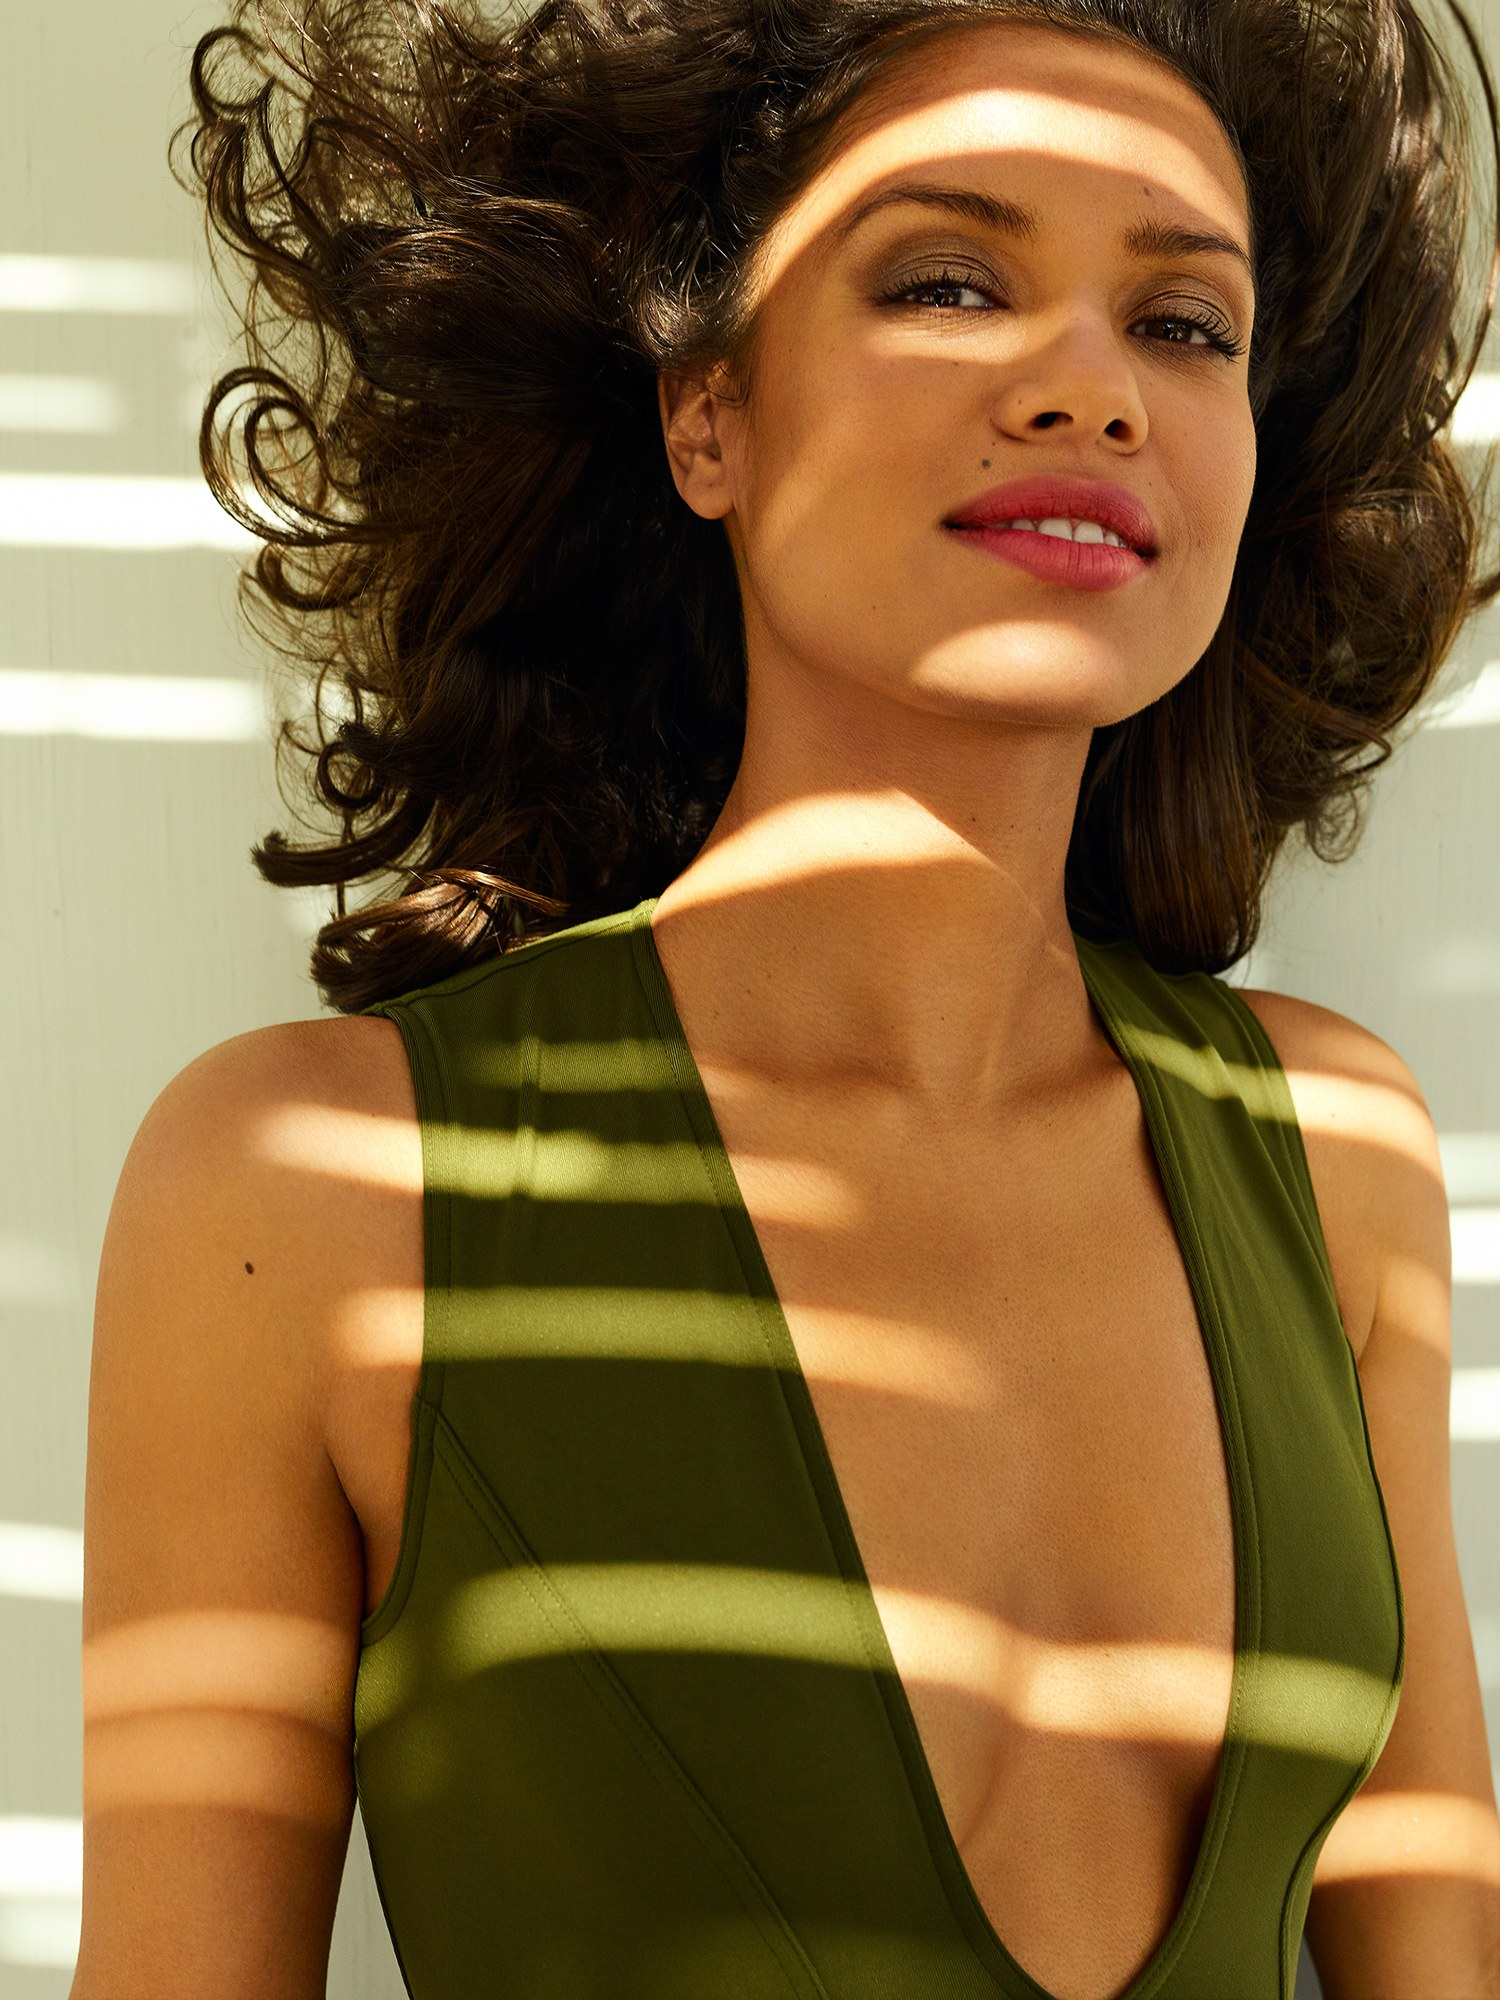 Gugu Mbatha-Raw to star in Loki series on Disney+